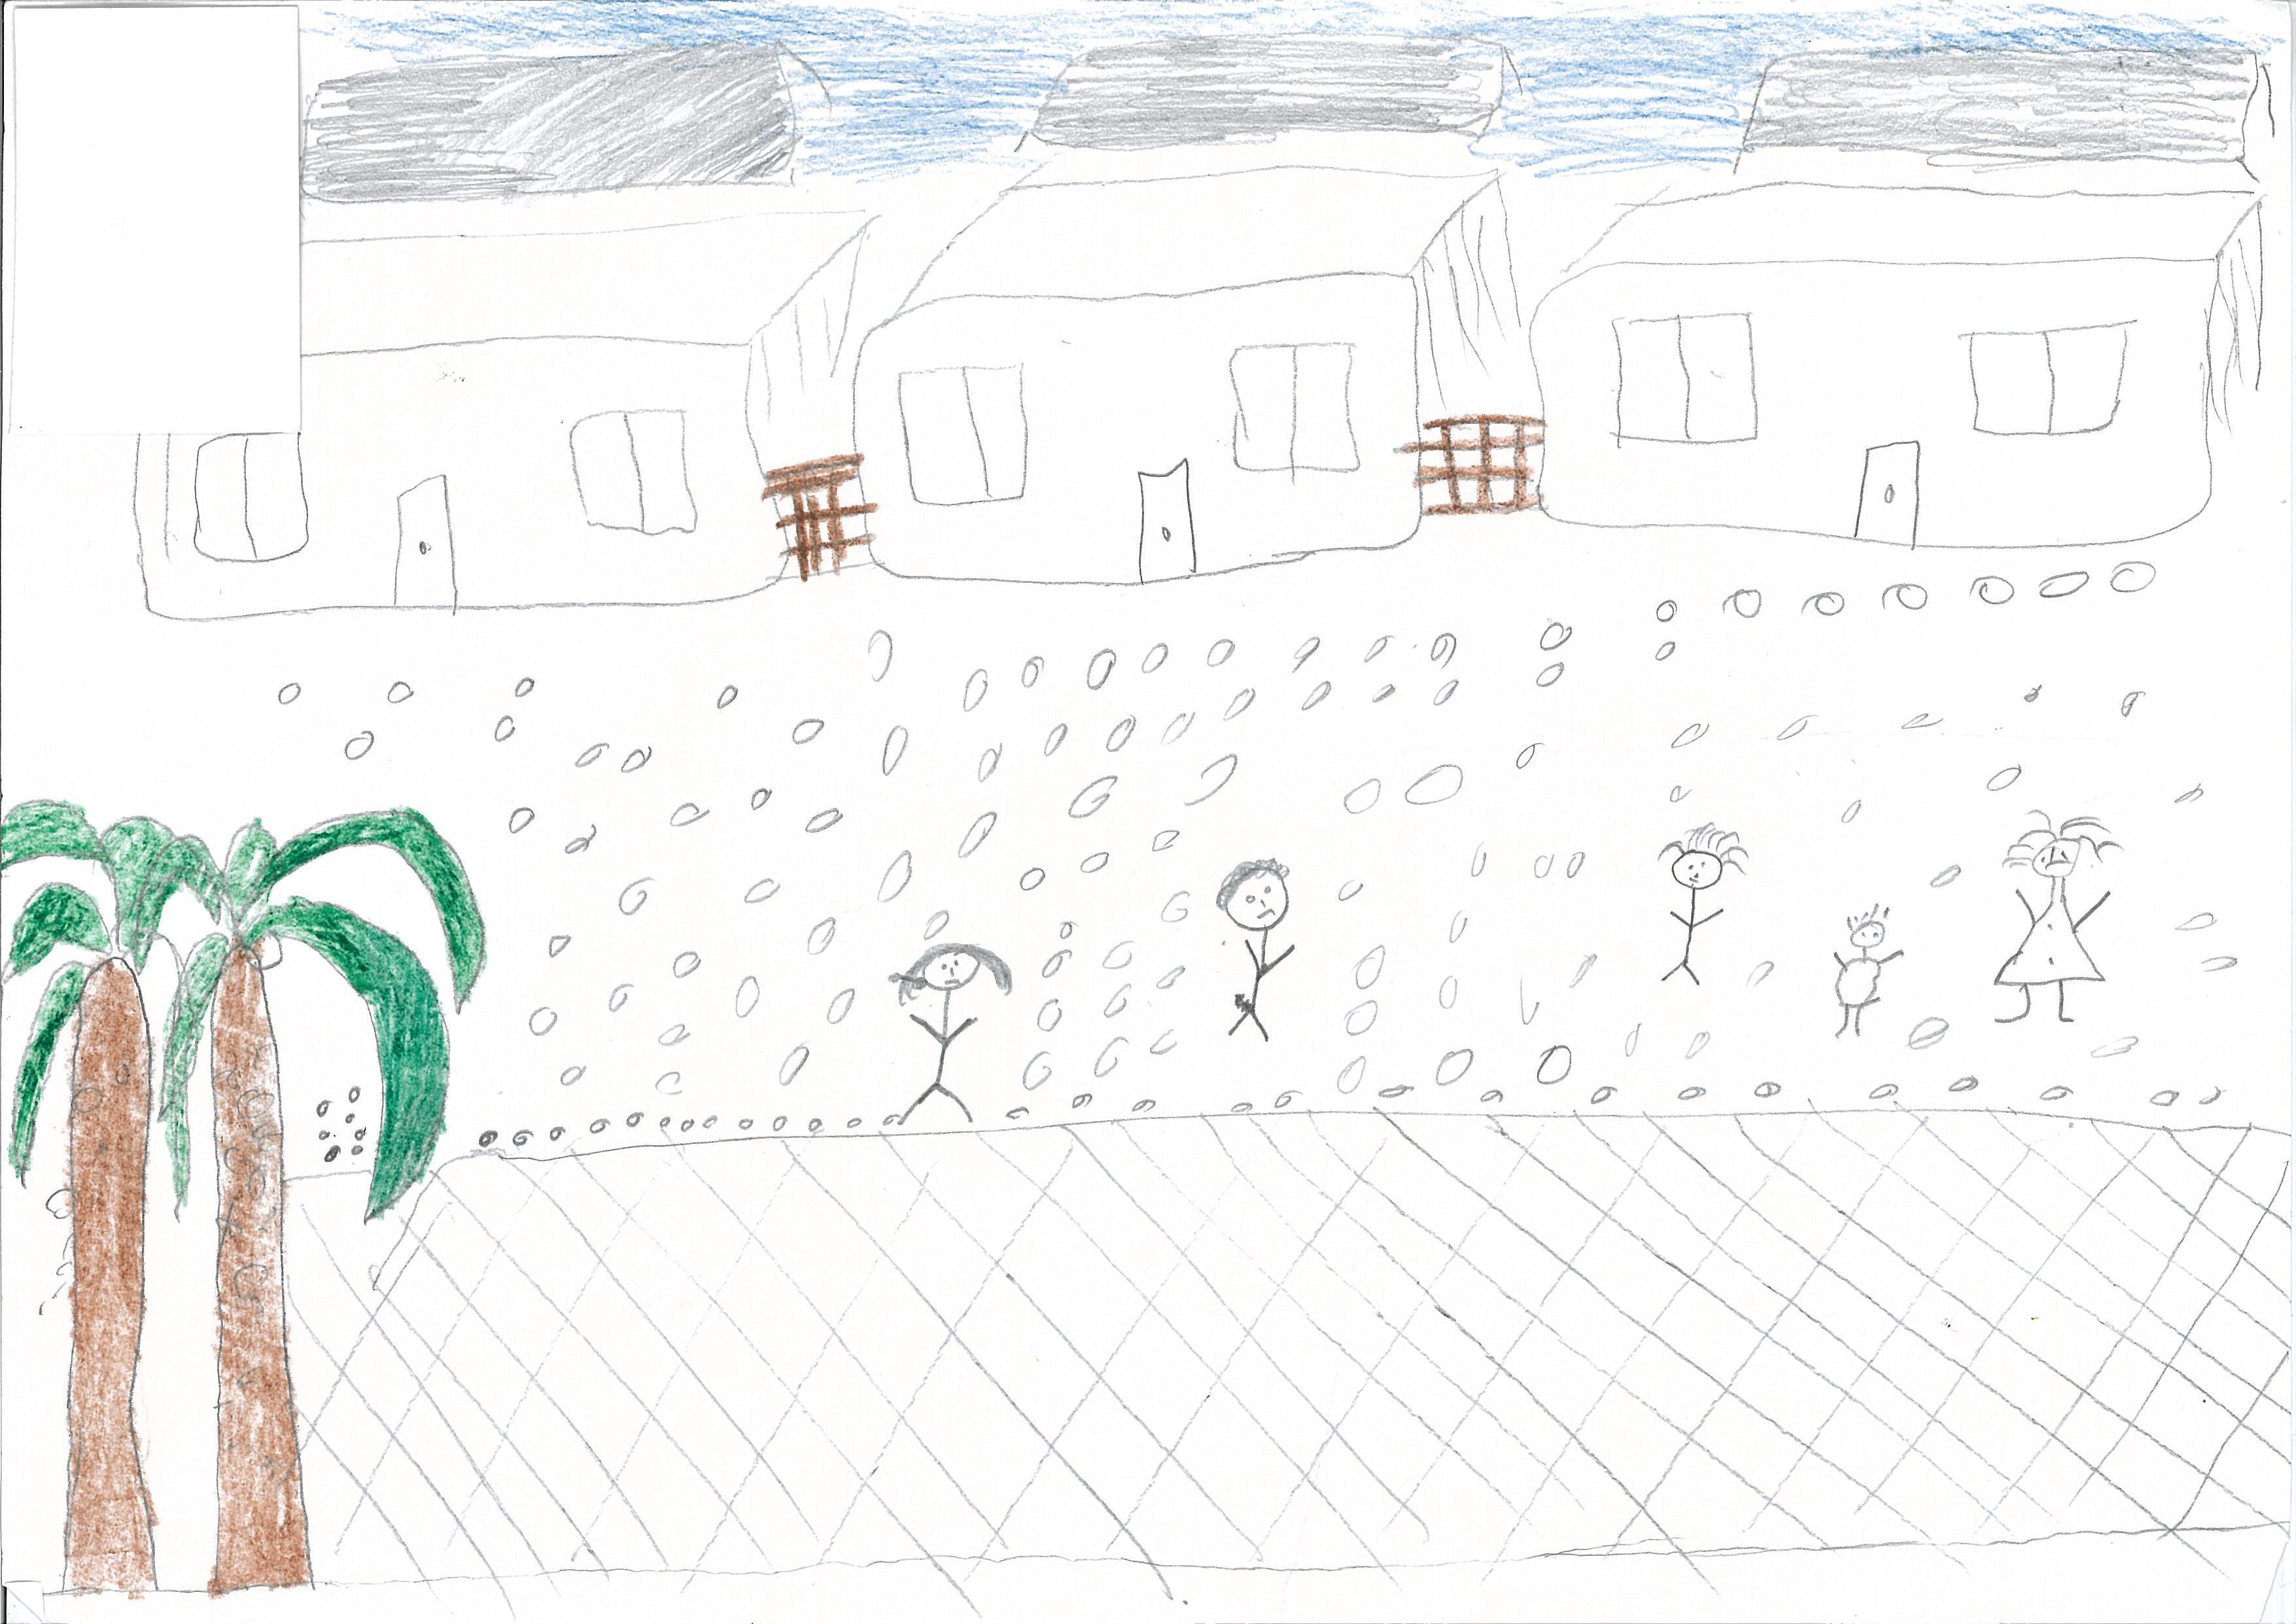 drawings by children in immigration detention